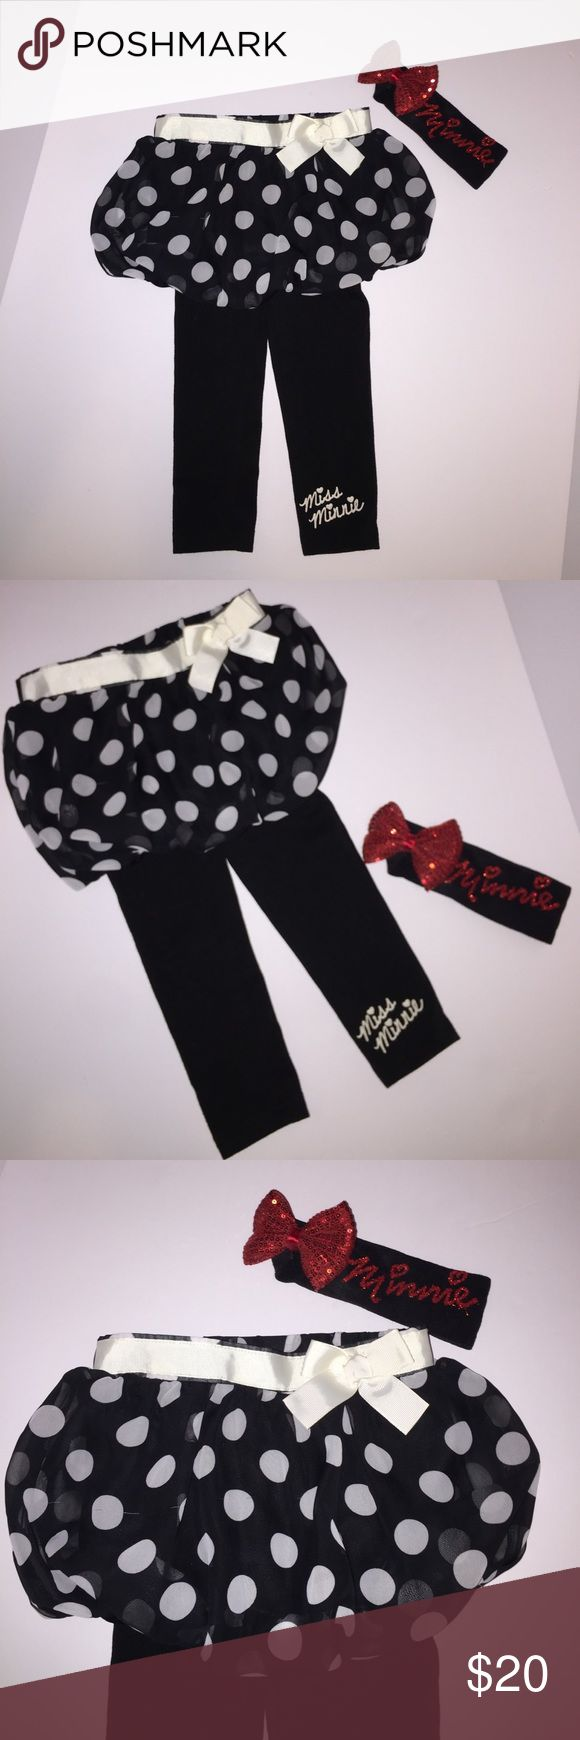 Minnie Mouse Bubble Skirt/leggings Minnie Bow 3T Minnie Mouse Bubble Skirt with attached leggings size 3T and Matching Minnie Headband Bow. super cute!! Great Condition! Disney Bottoms Skirts